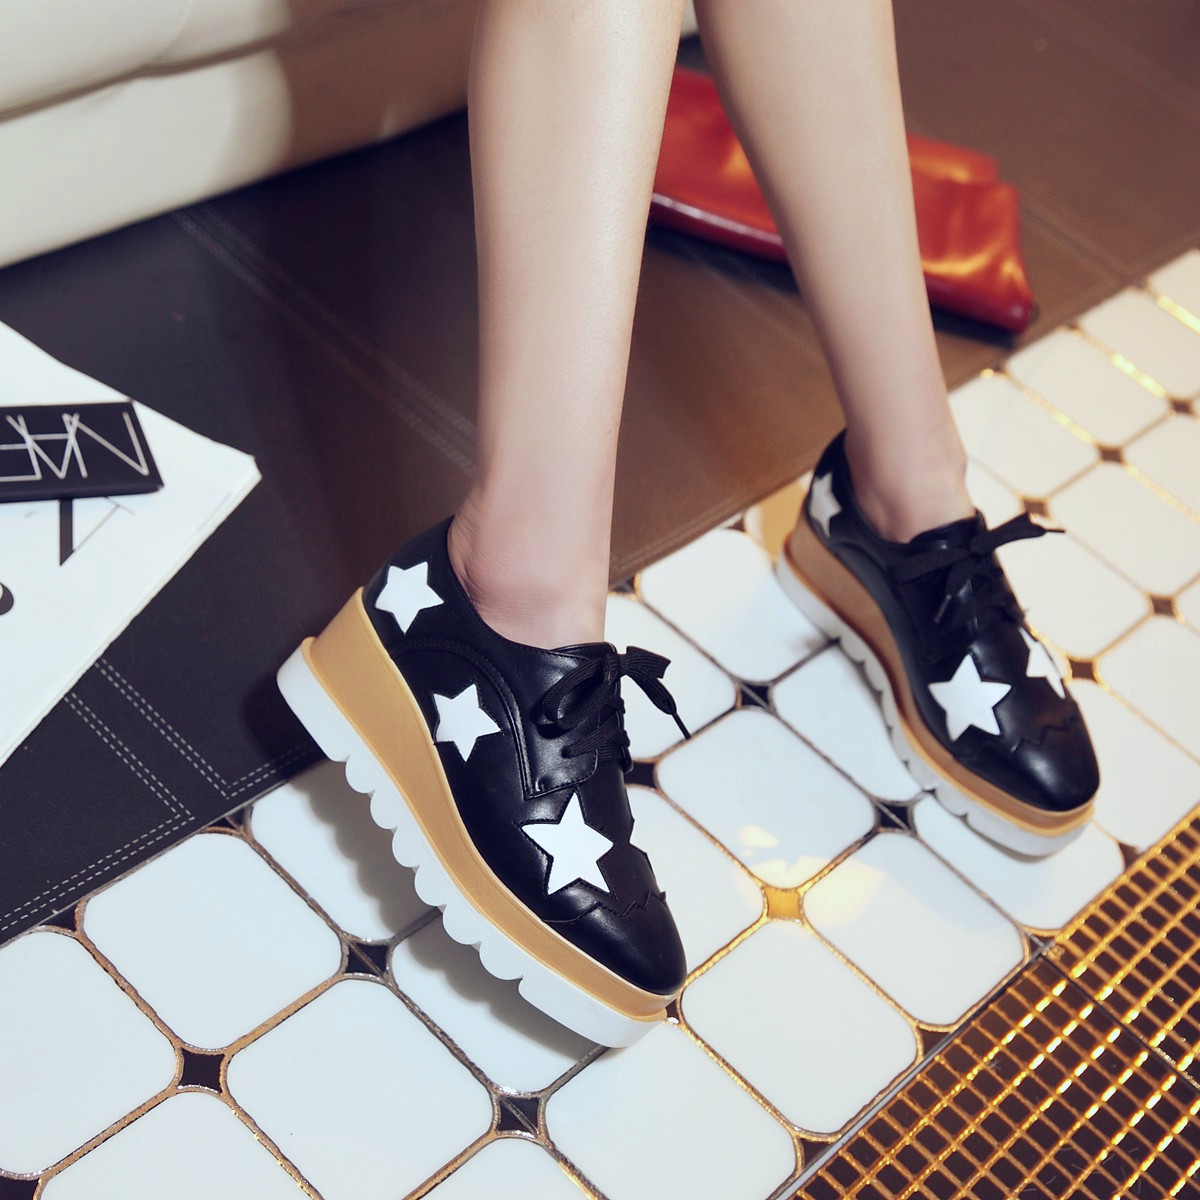 Preppy Fashion Girls Wedge Heels Lace Up Oxford Womens Platform Shoes BlackJ011